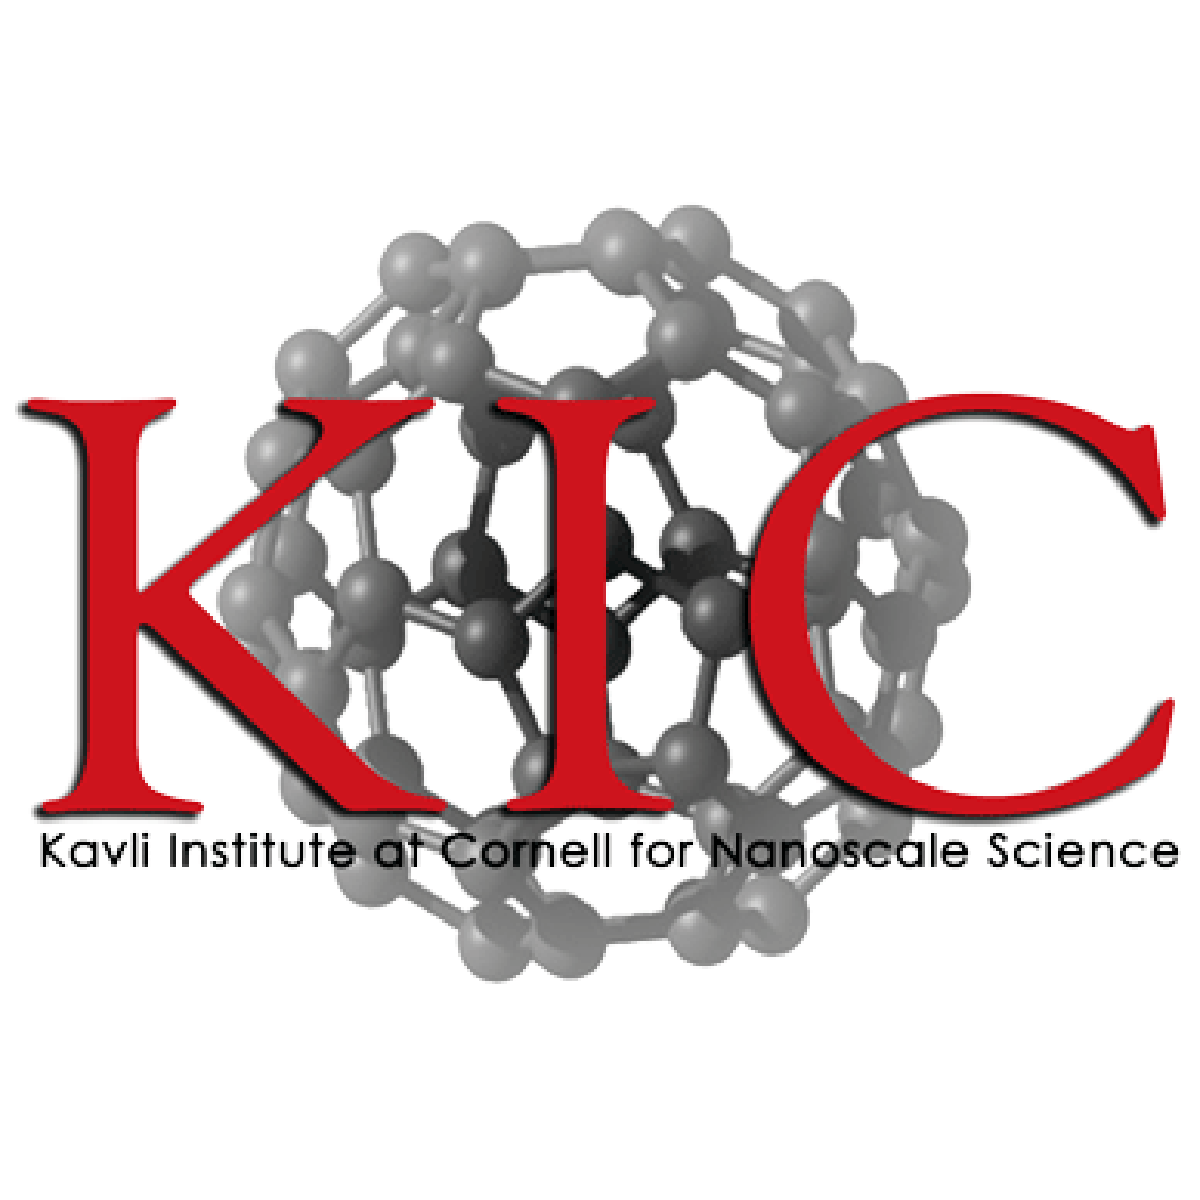 Kavli Institute at Cornell